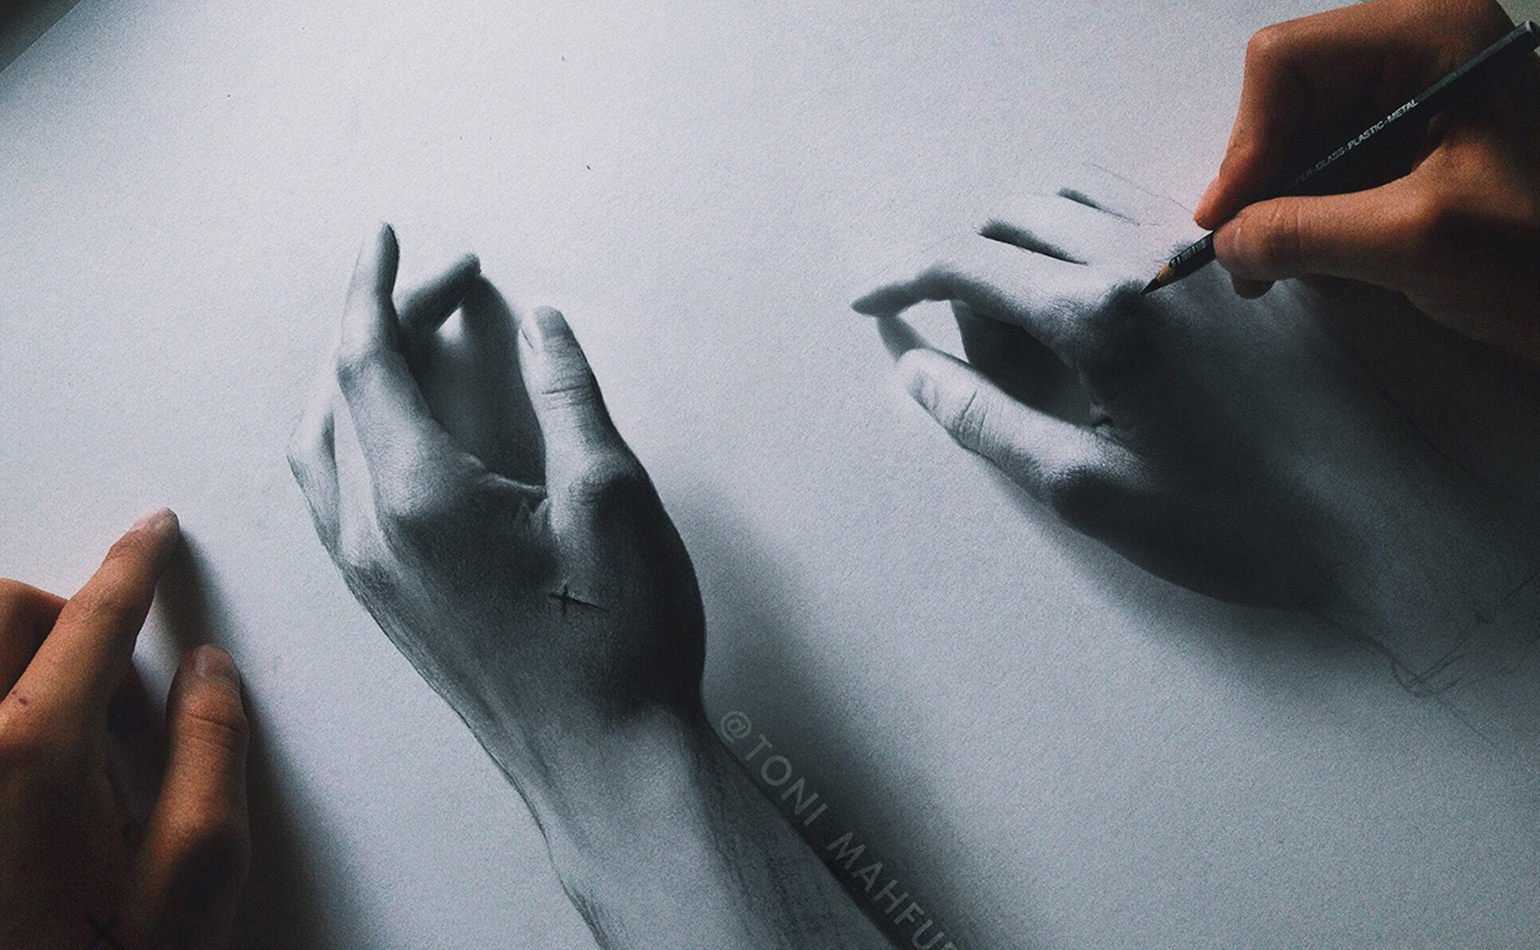 MY_HANDS_ARTWORK_DRAWING_TONI_MAHFUD_WEB_01